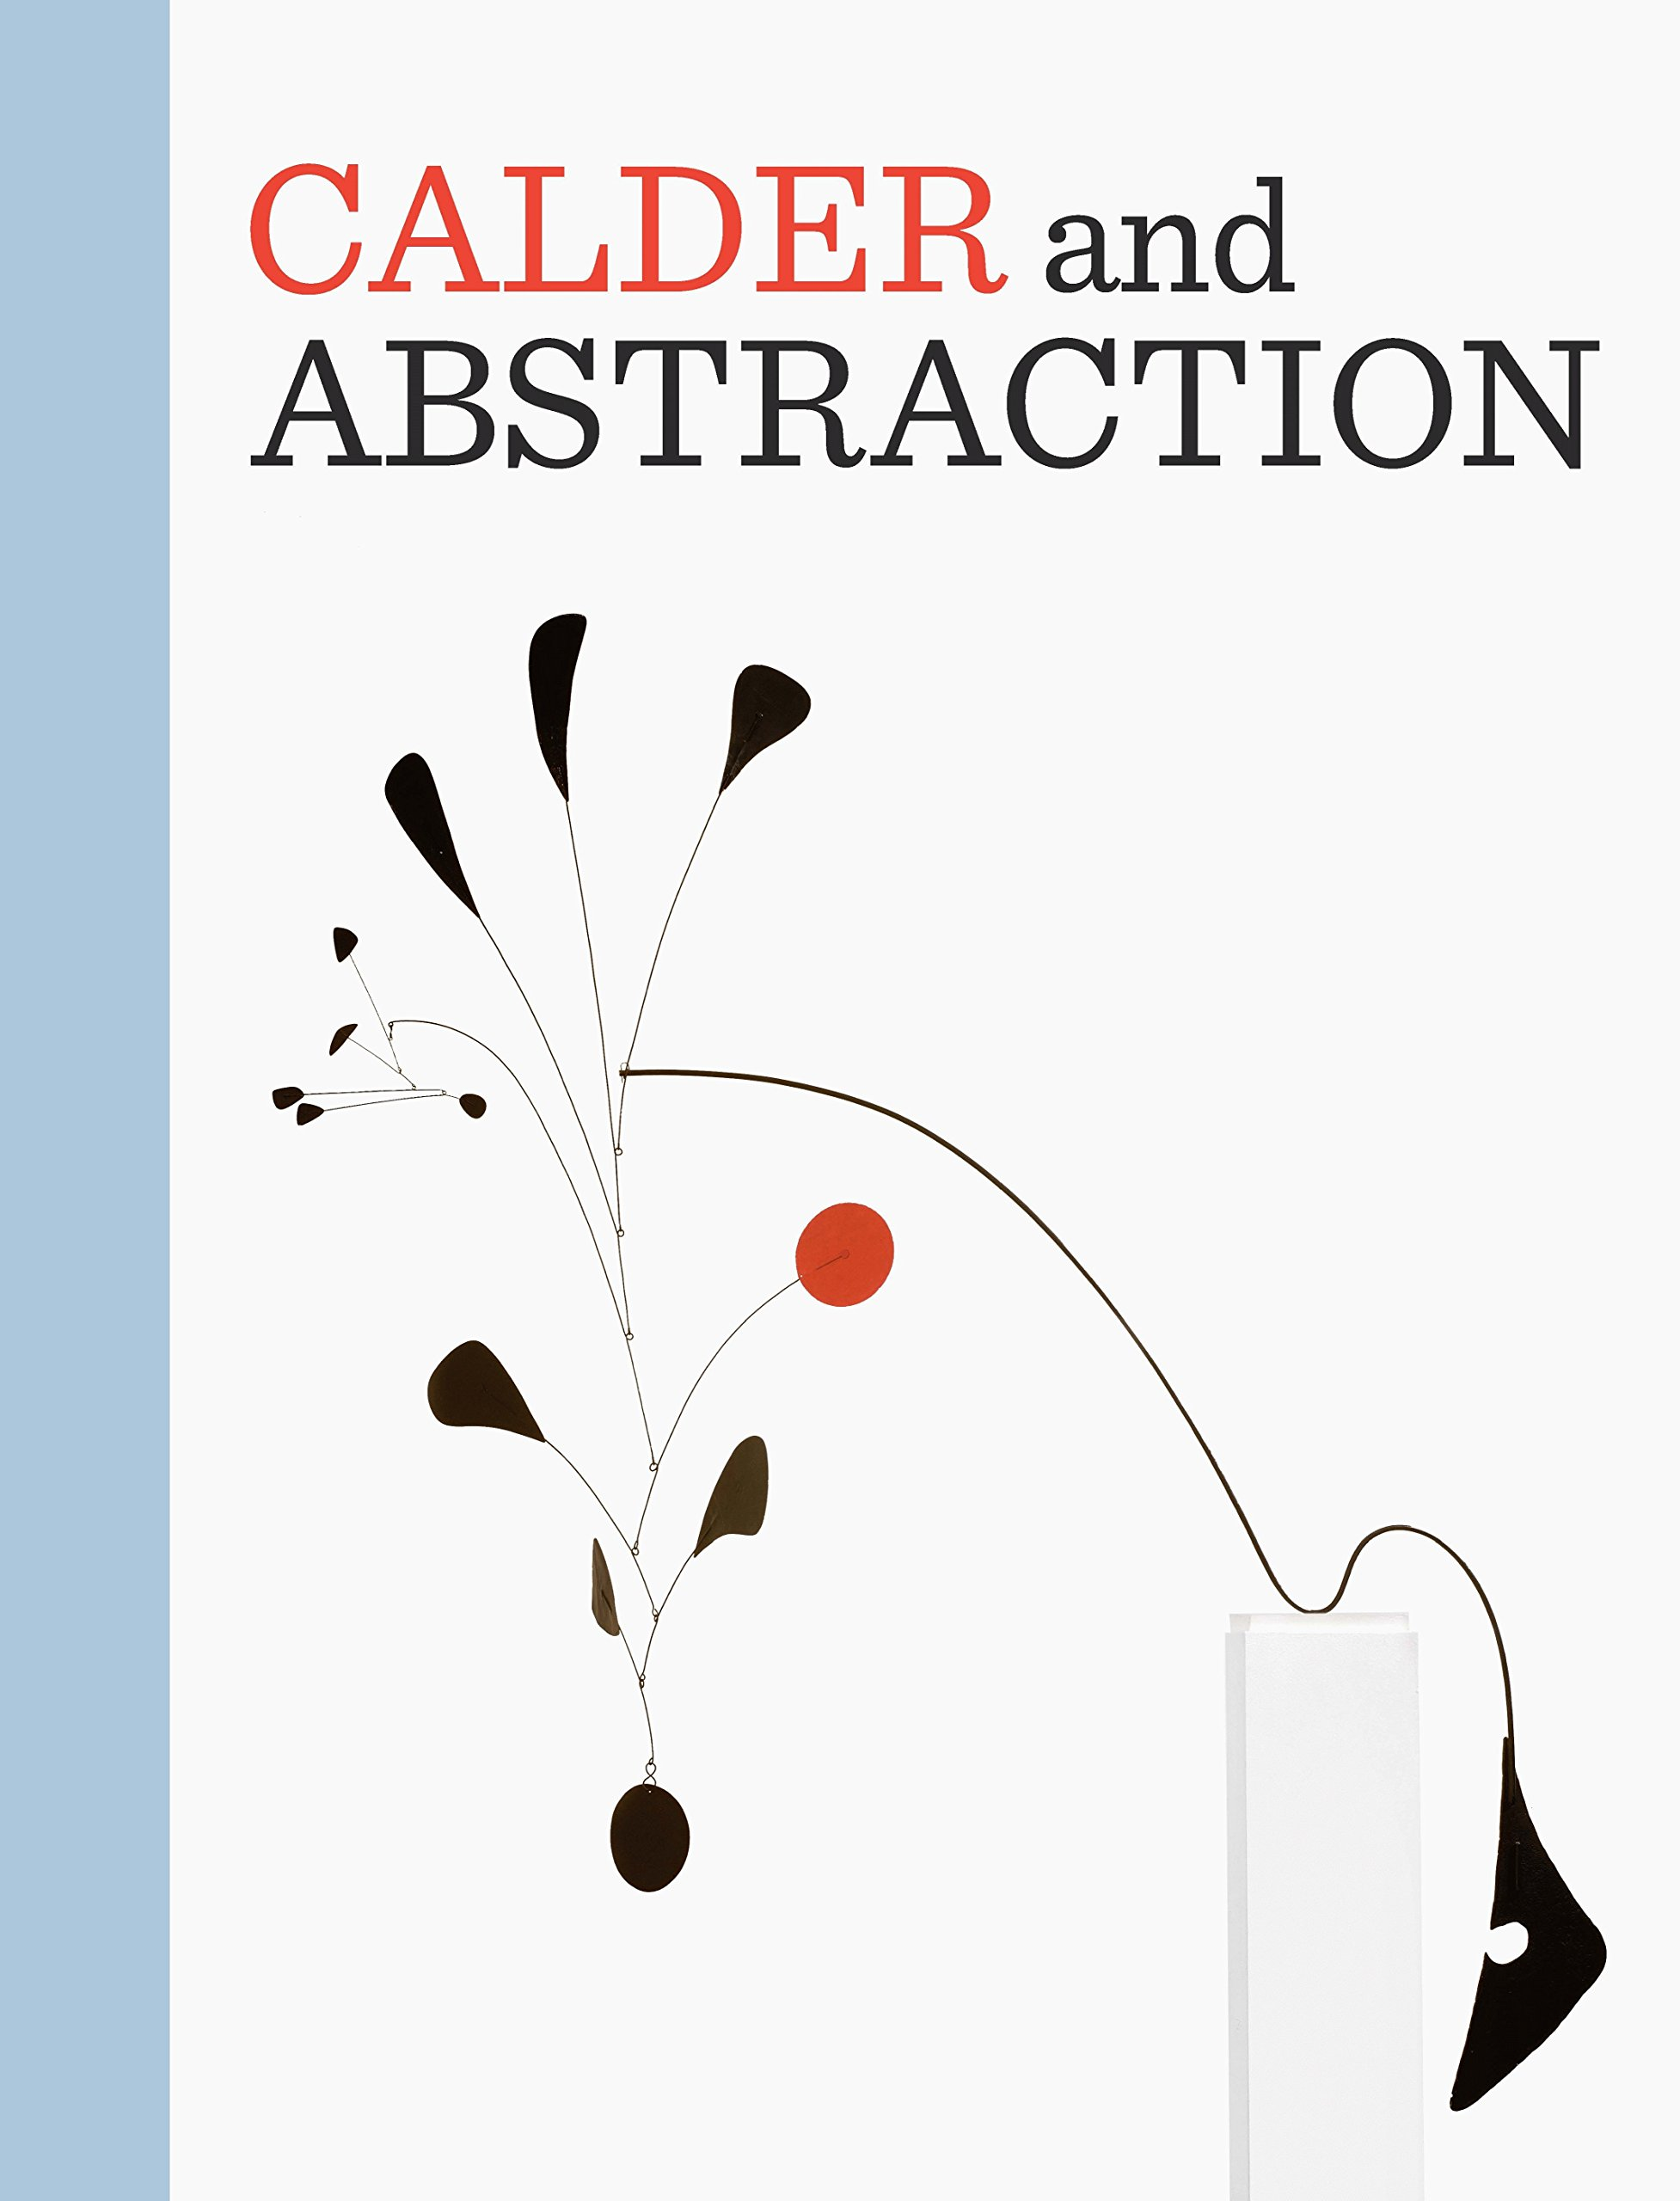 Calder and Abstraction: From Avant-Garde to Iconic by Prestel USA